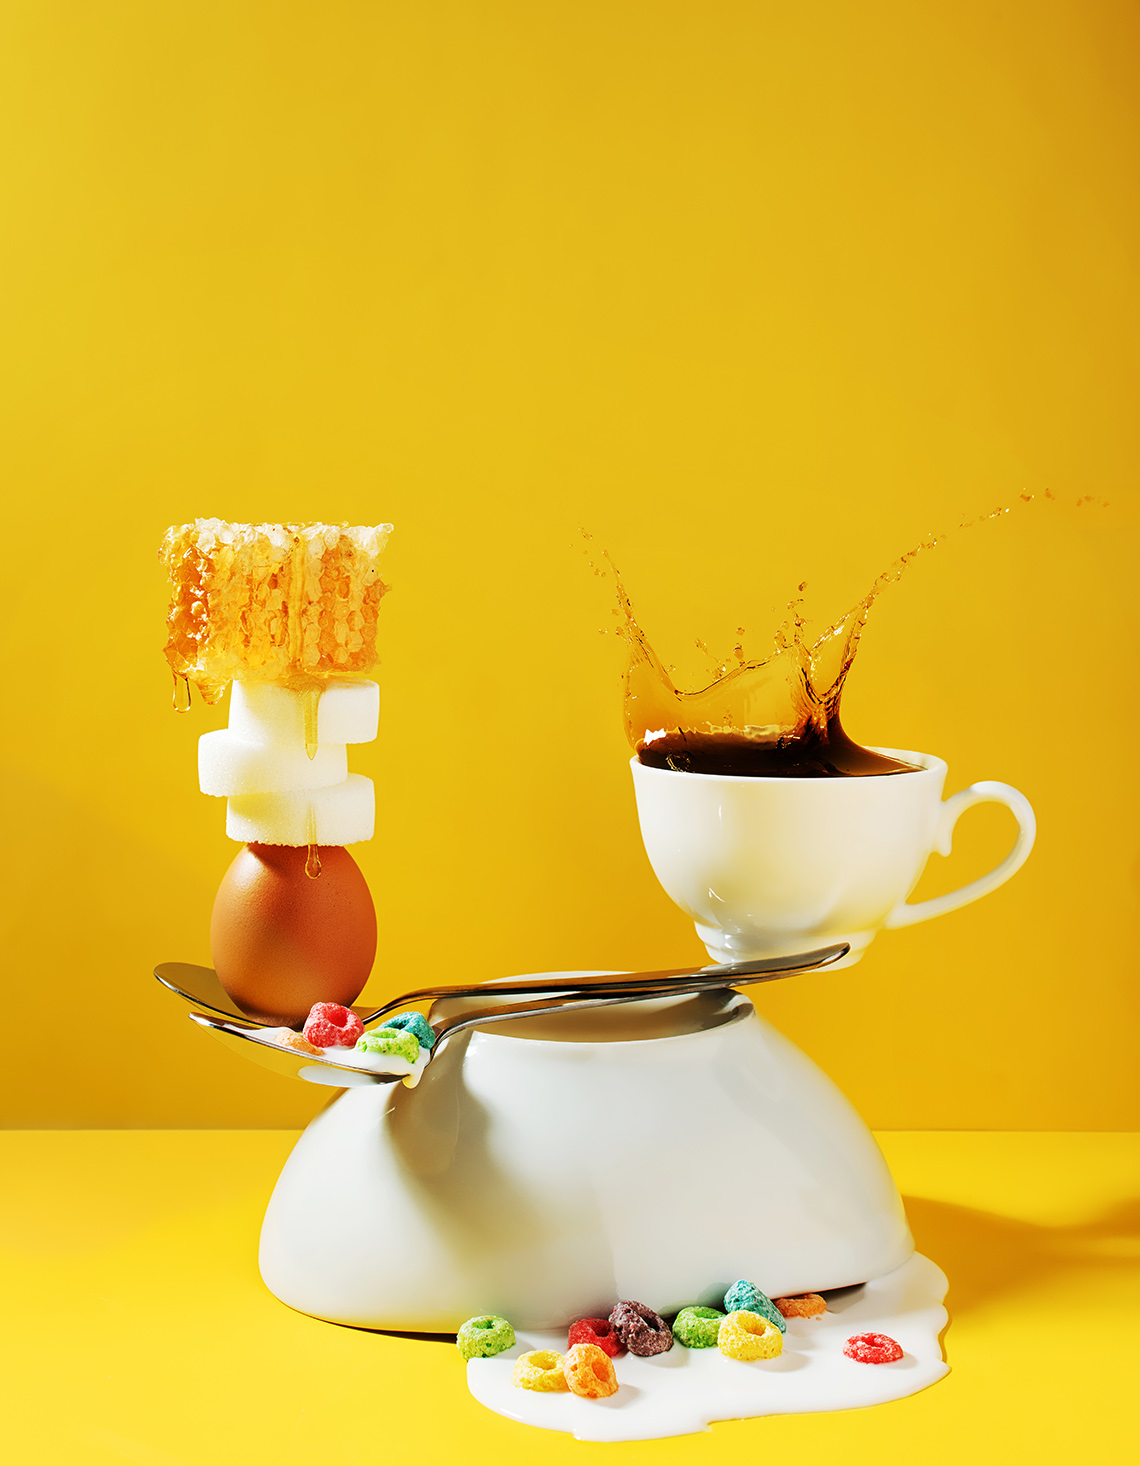 New-york-liquid-beverage-studio-coffee-splash